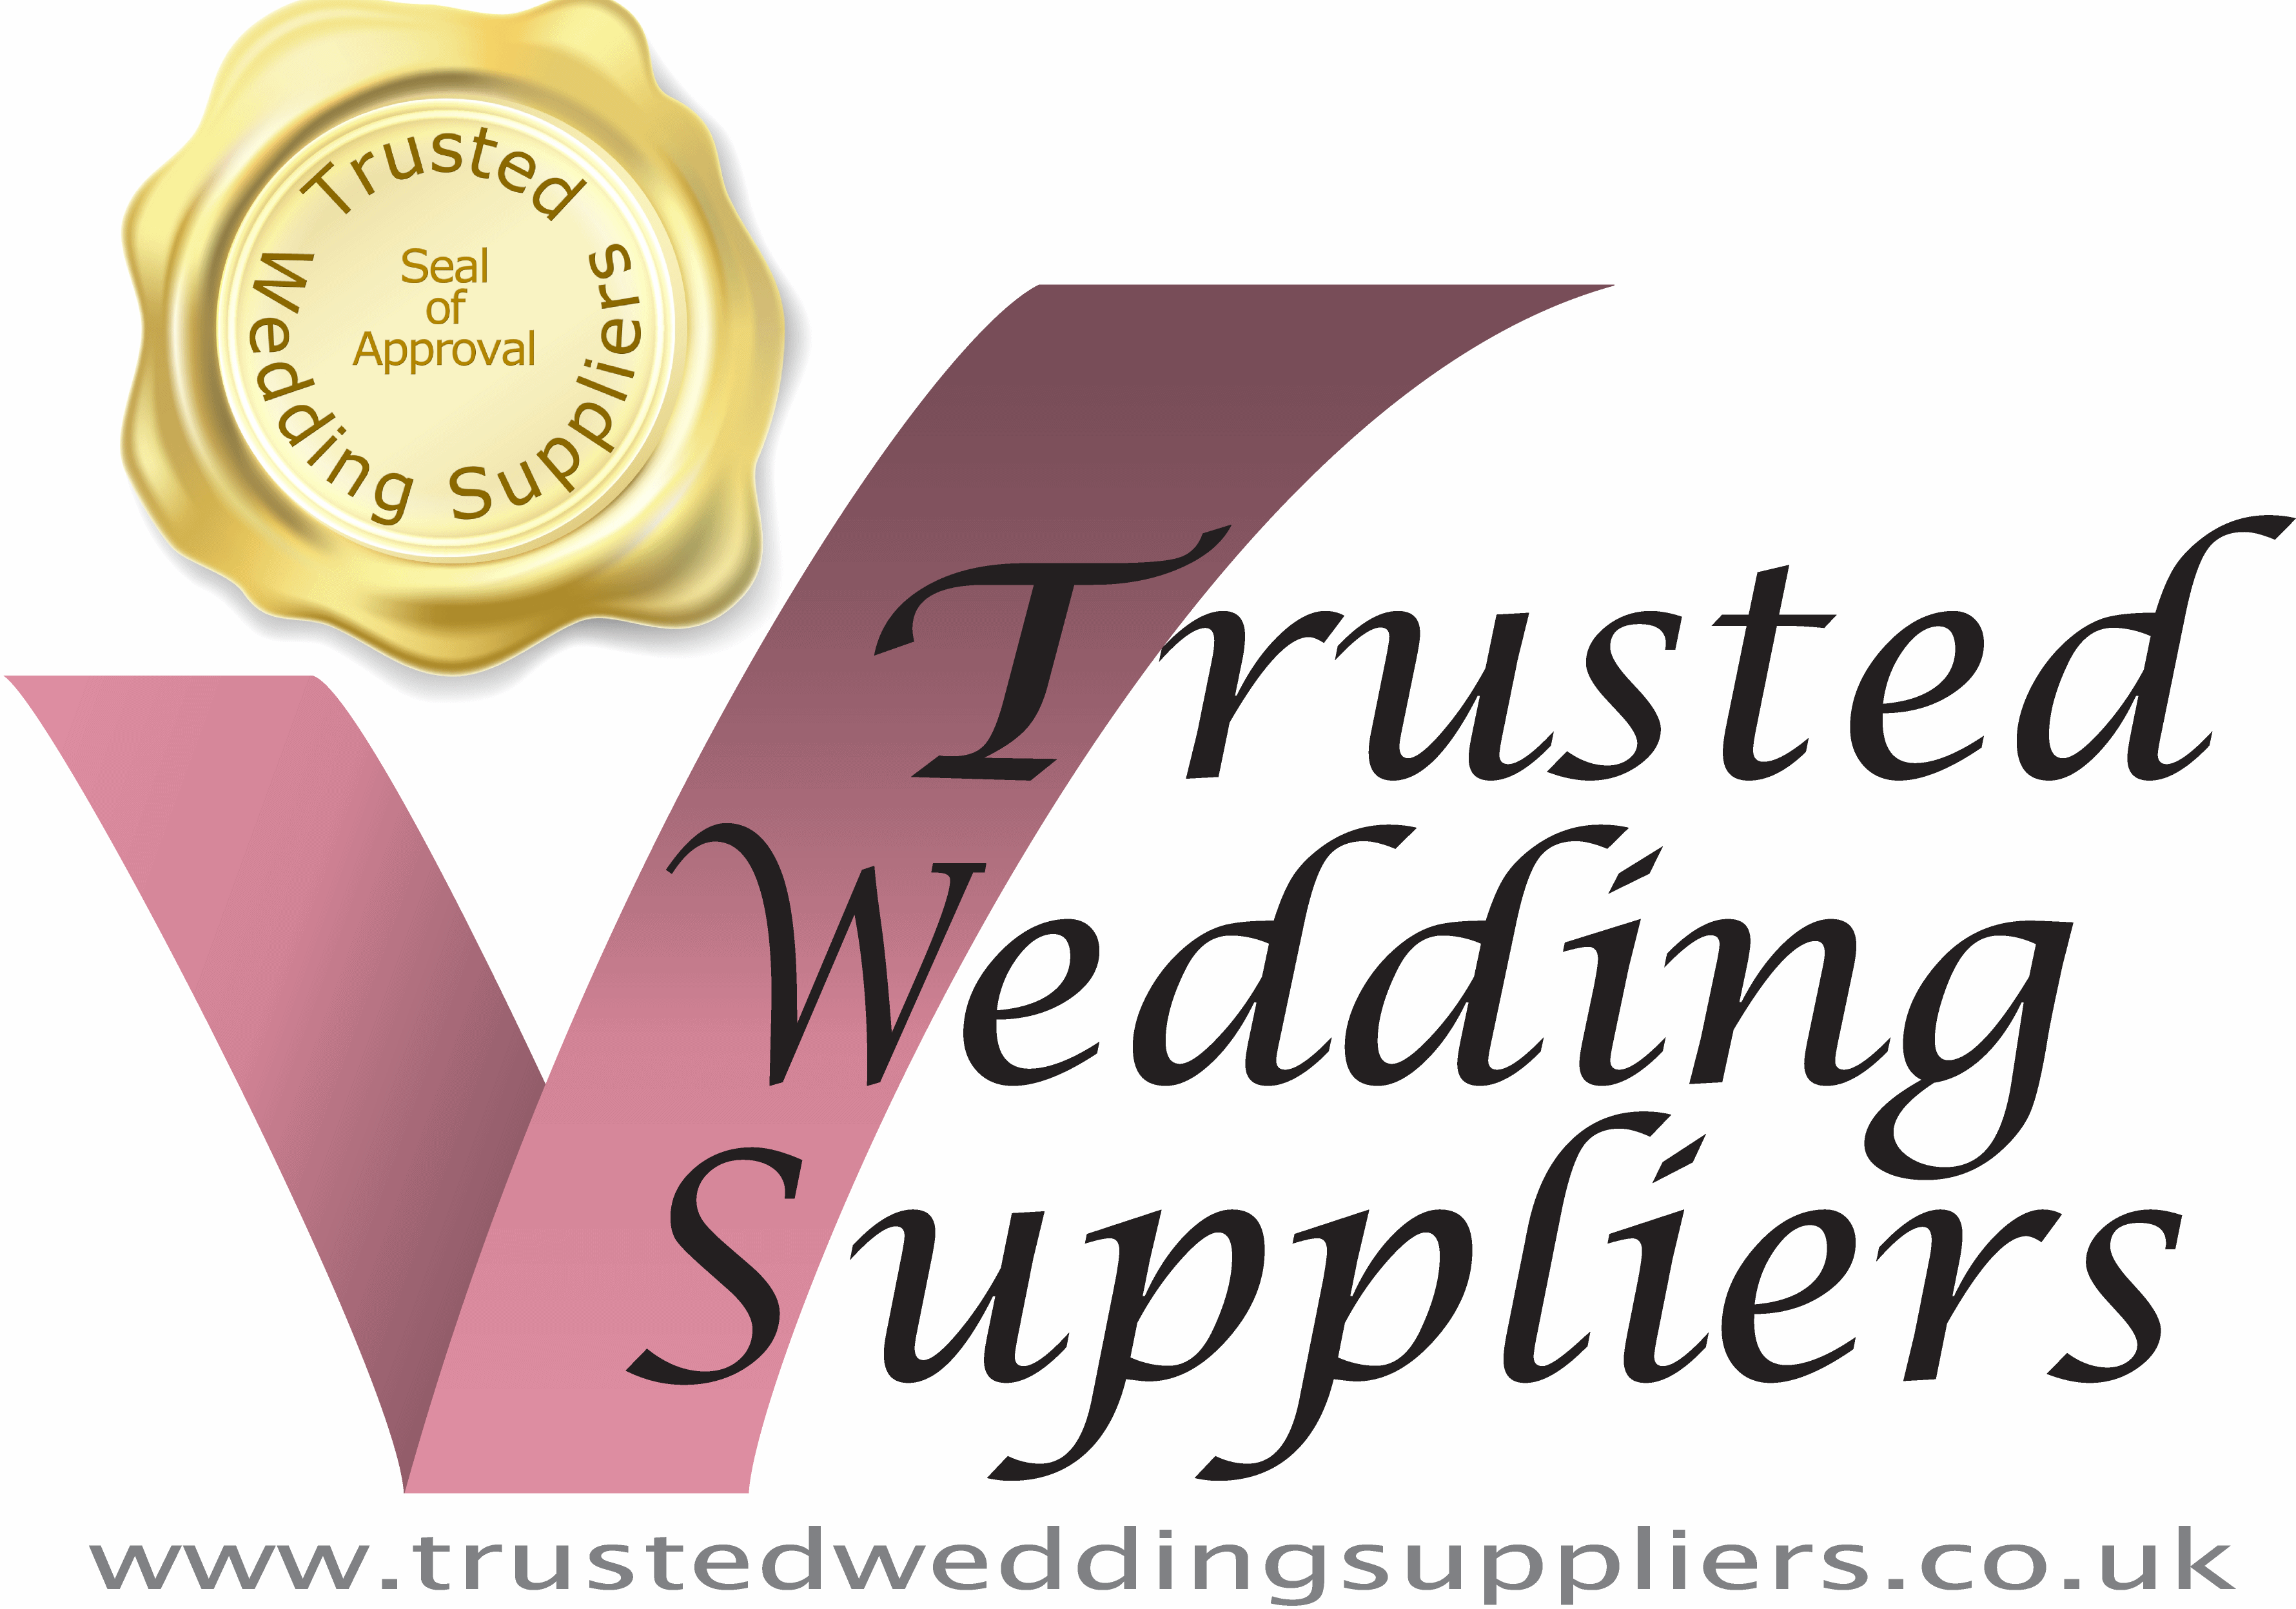 Trusted Wedding Suppliers